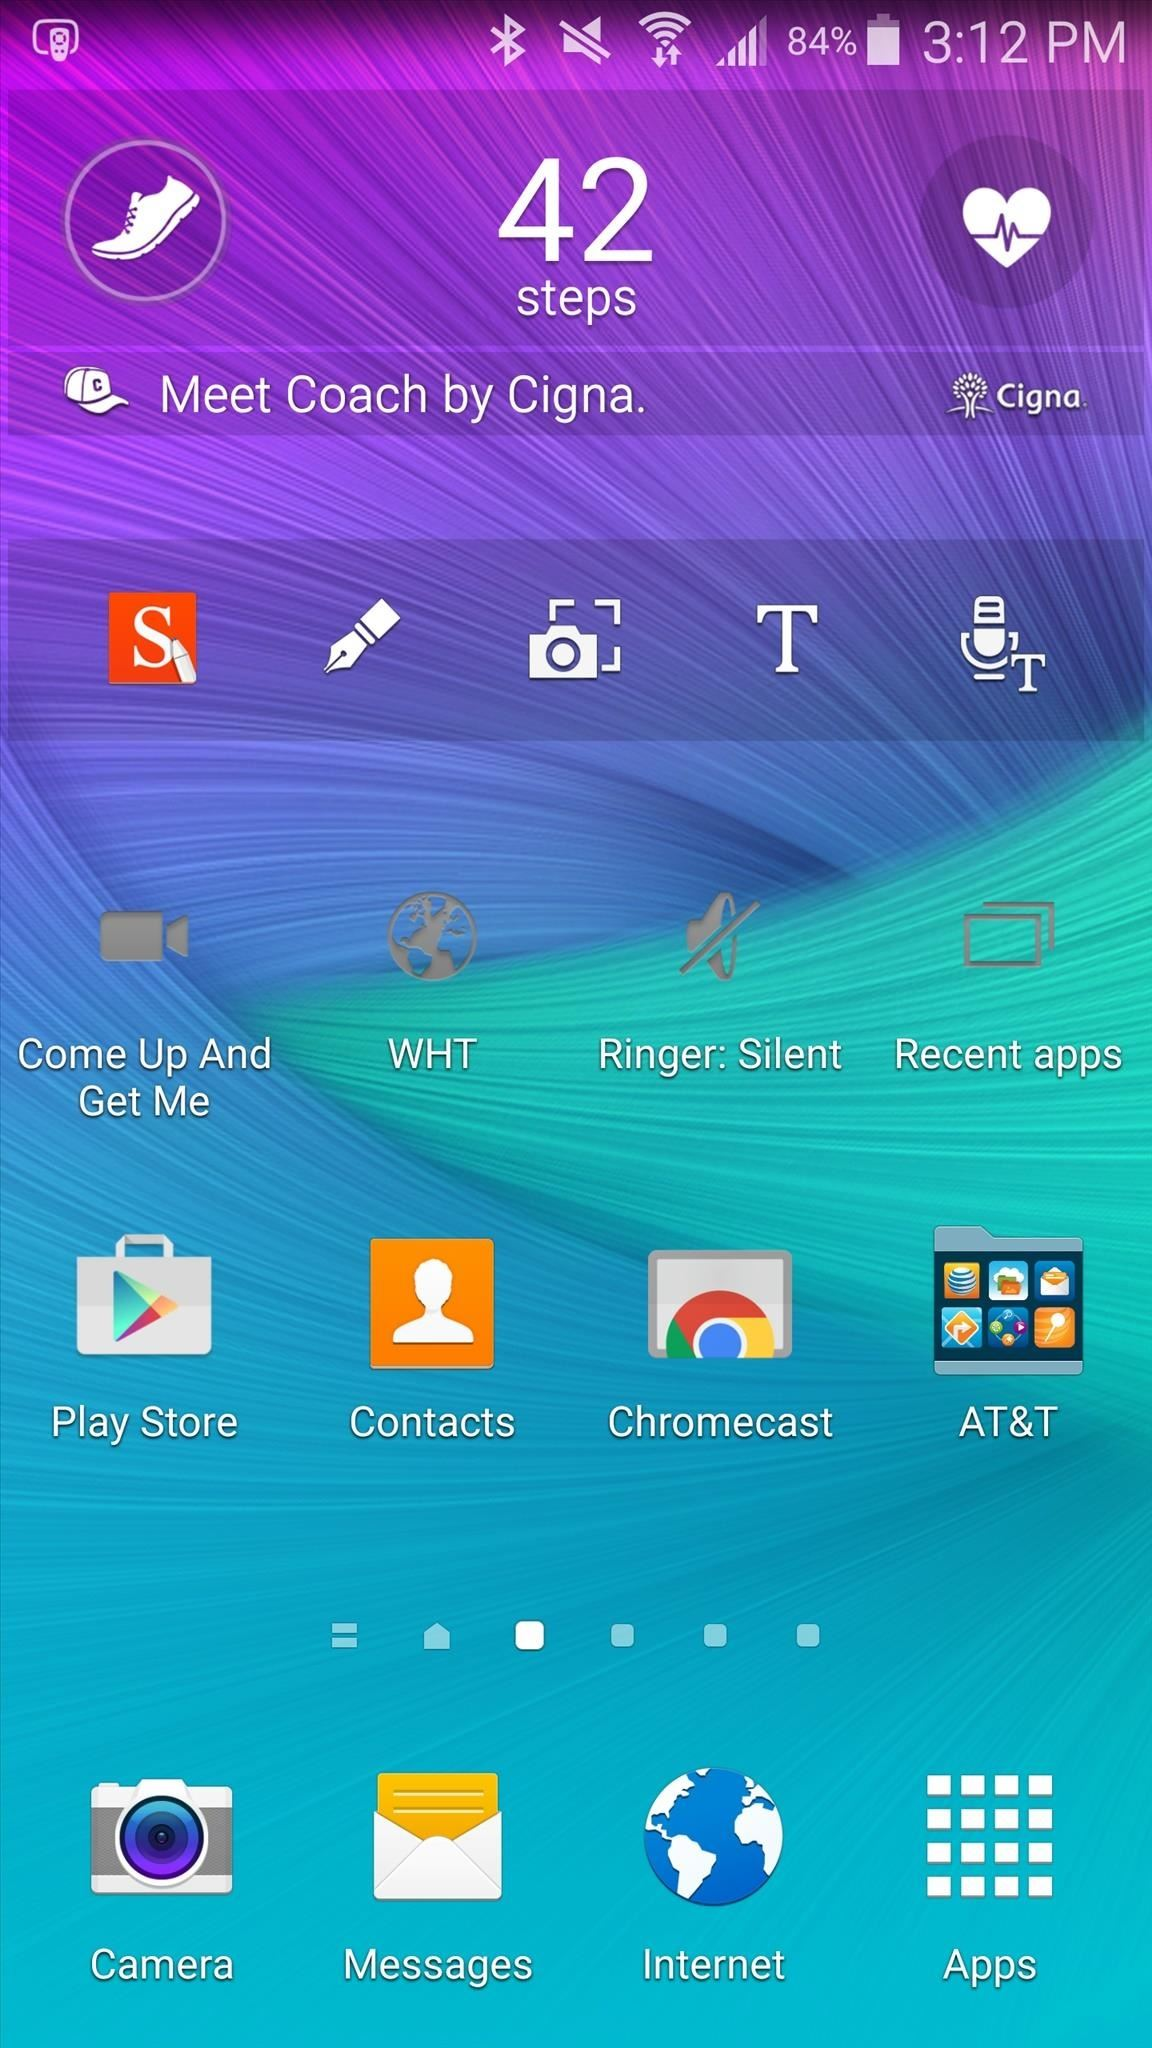 How to Add More Shortcuts to Your Android's Home Screen